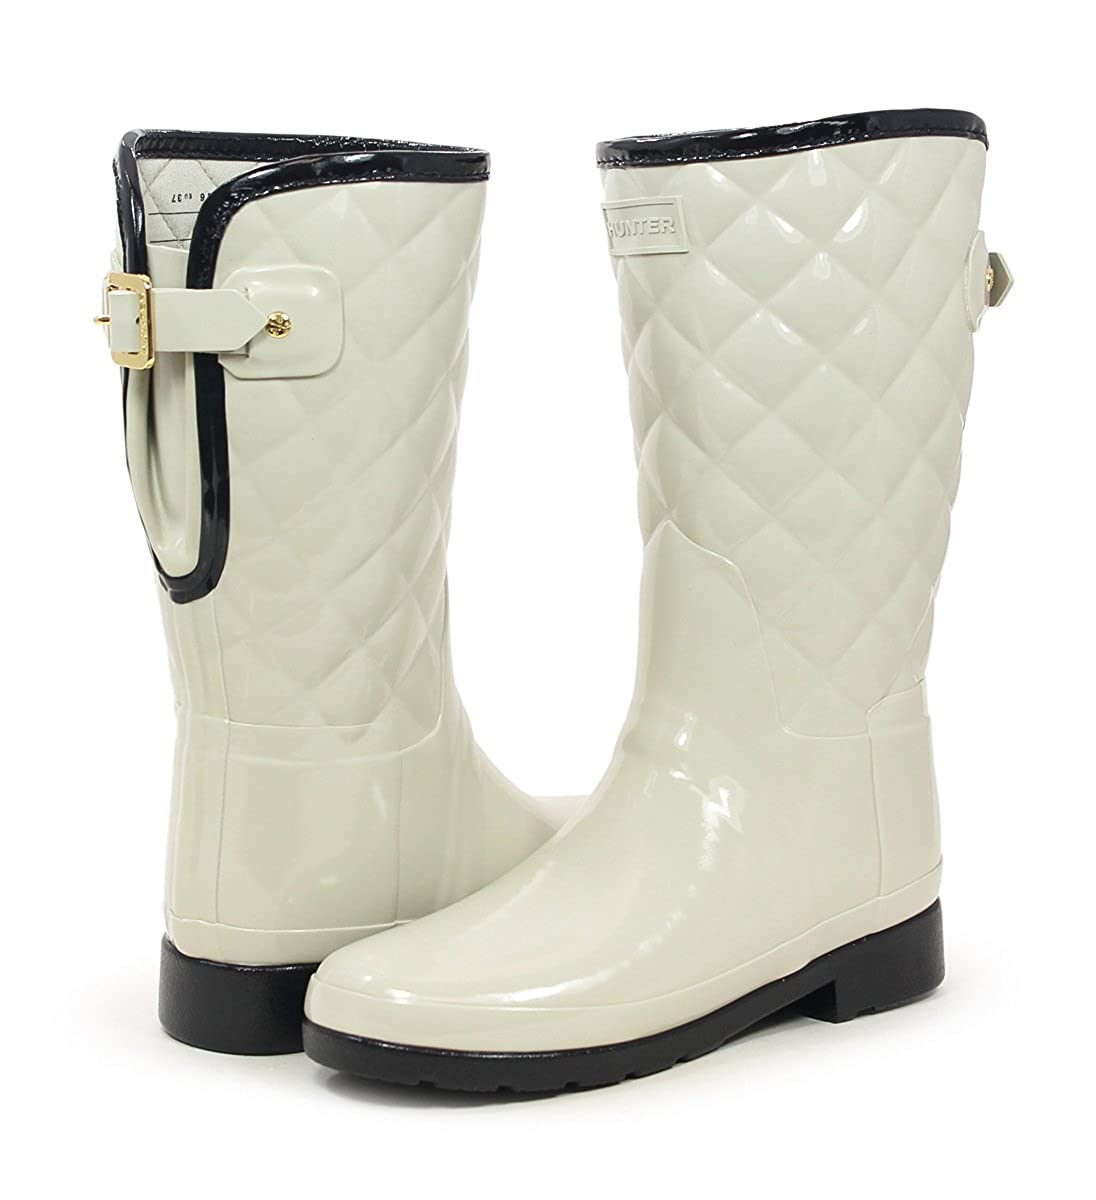 Hunter Original Refined High Gloss Quilted Parchment Short Rain Boots B07BHM72K6 10 M US